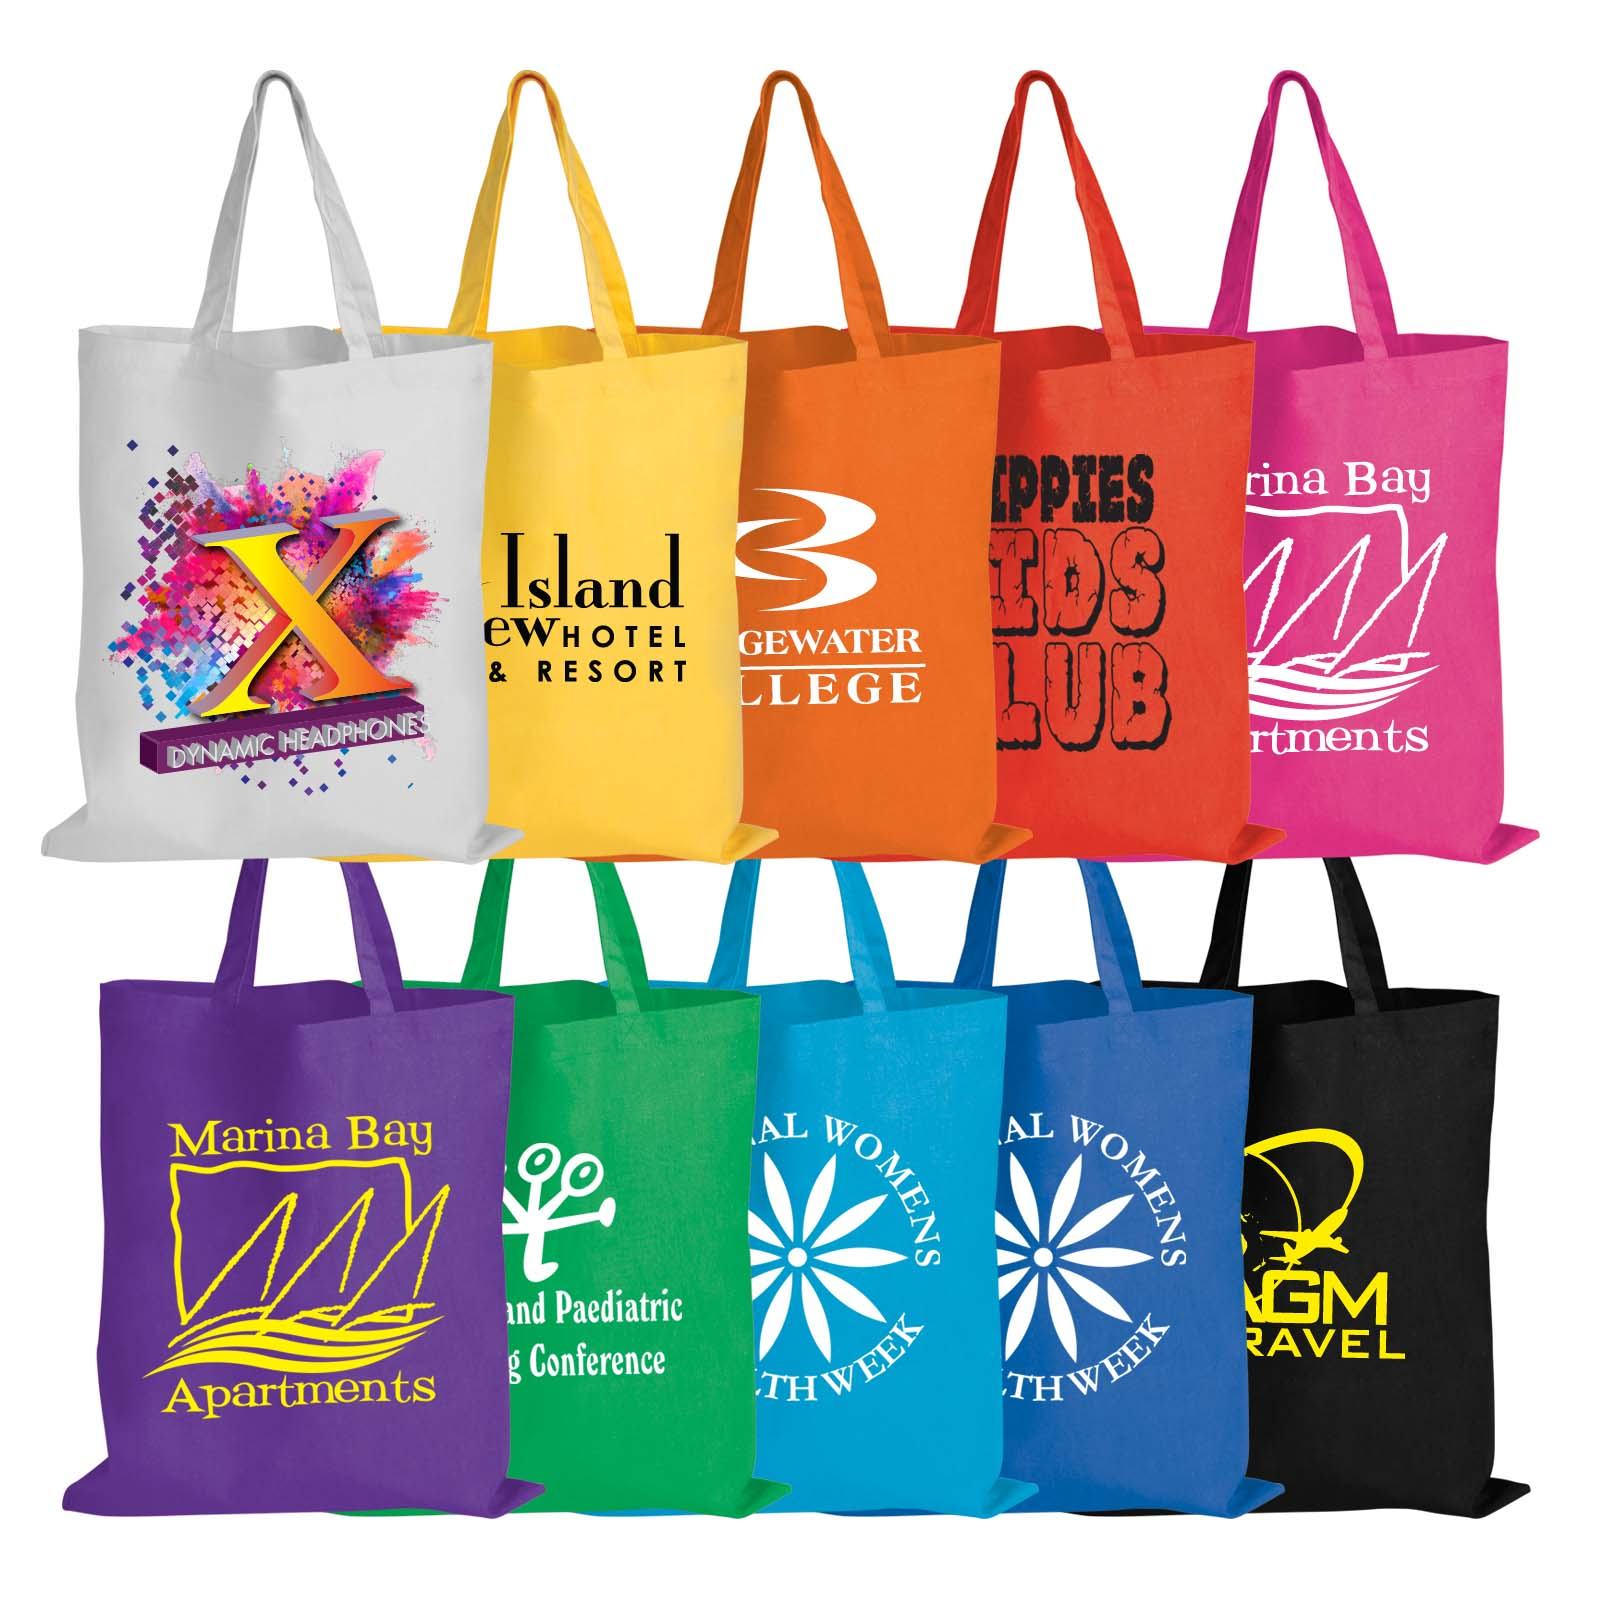 Coloured Cotton Double Short Handle Tote Bag - 140 GSM - Includes a 1 colour printed logo